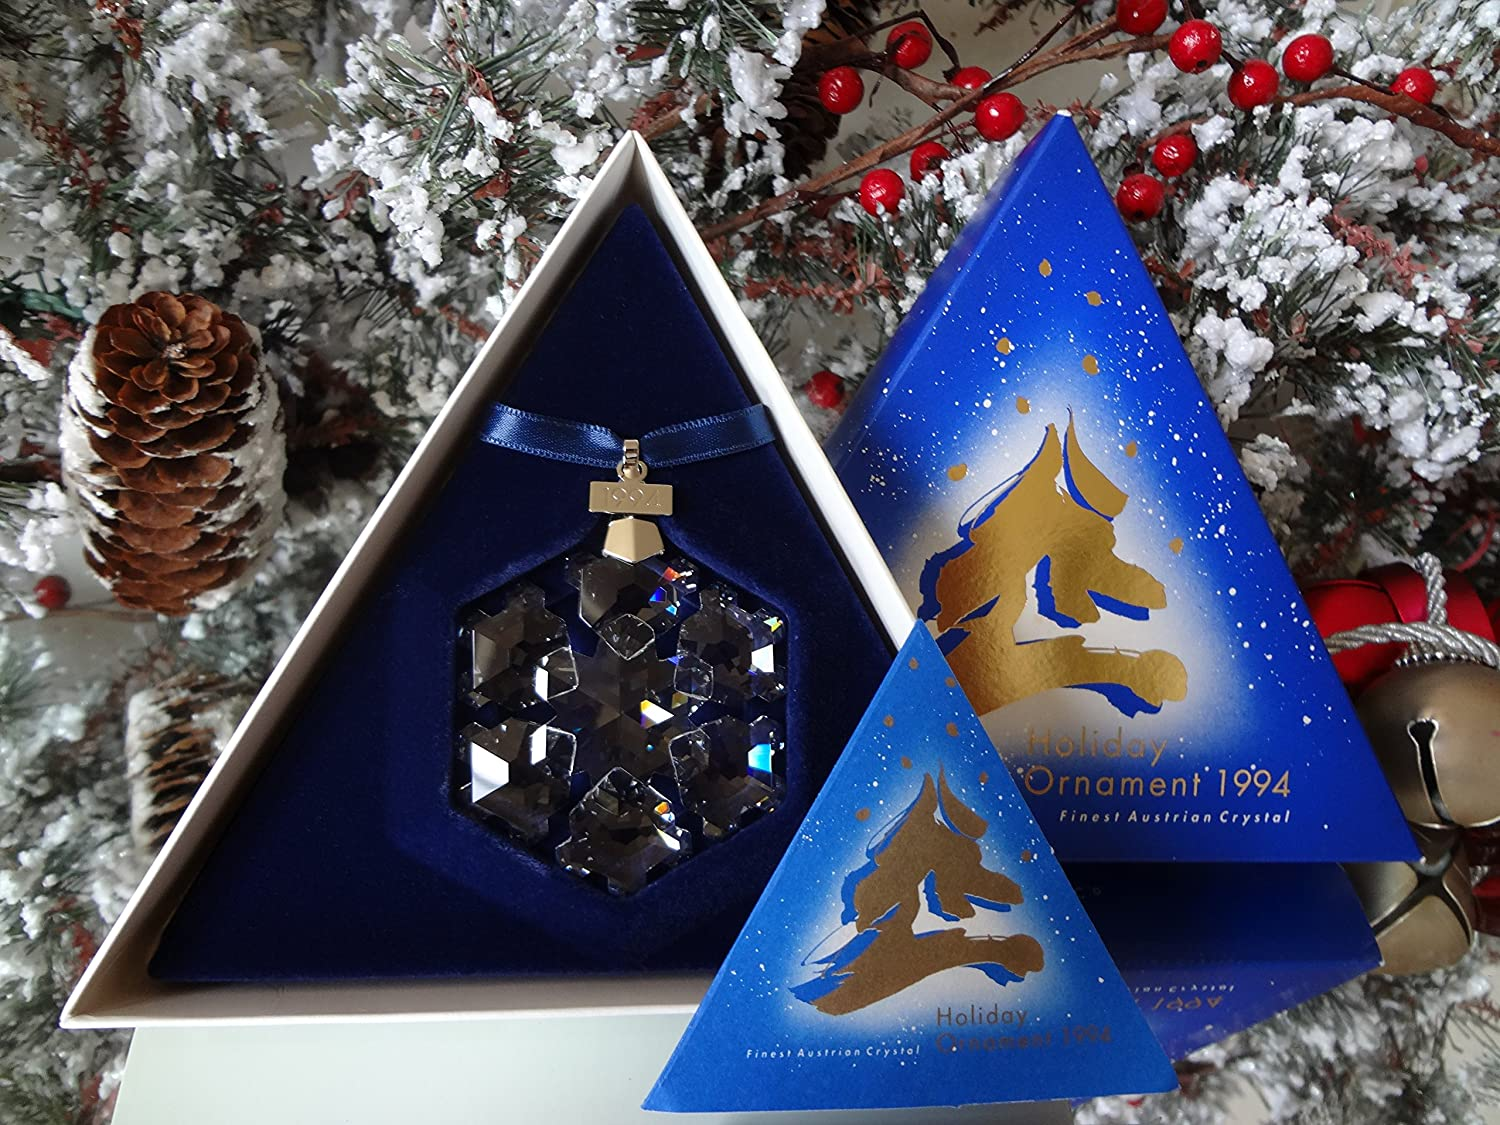 Swarovski christmas ornament 2004 - Amazon Com Rare Retired 1994 Swarovski Holiday Annual Ornament Home Kitchen